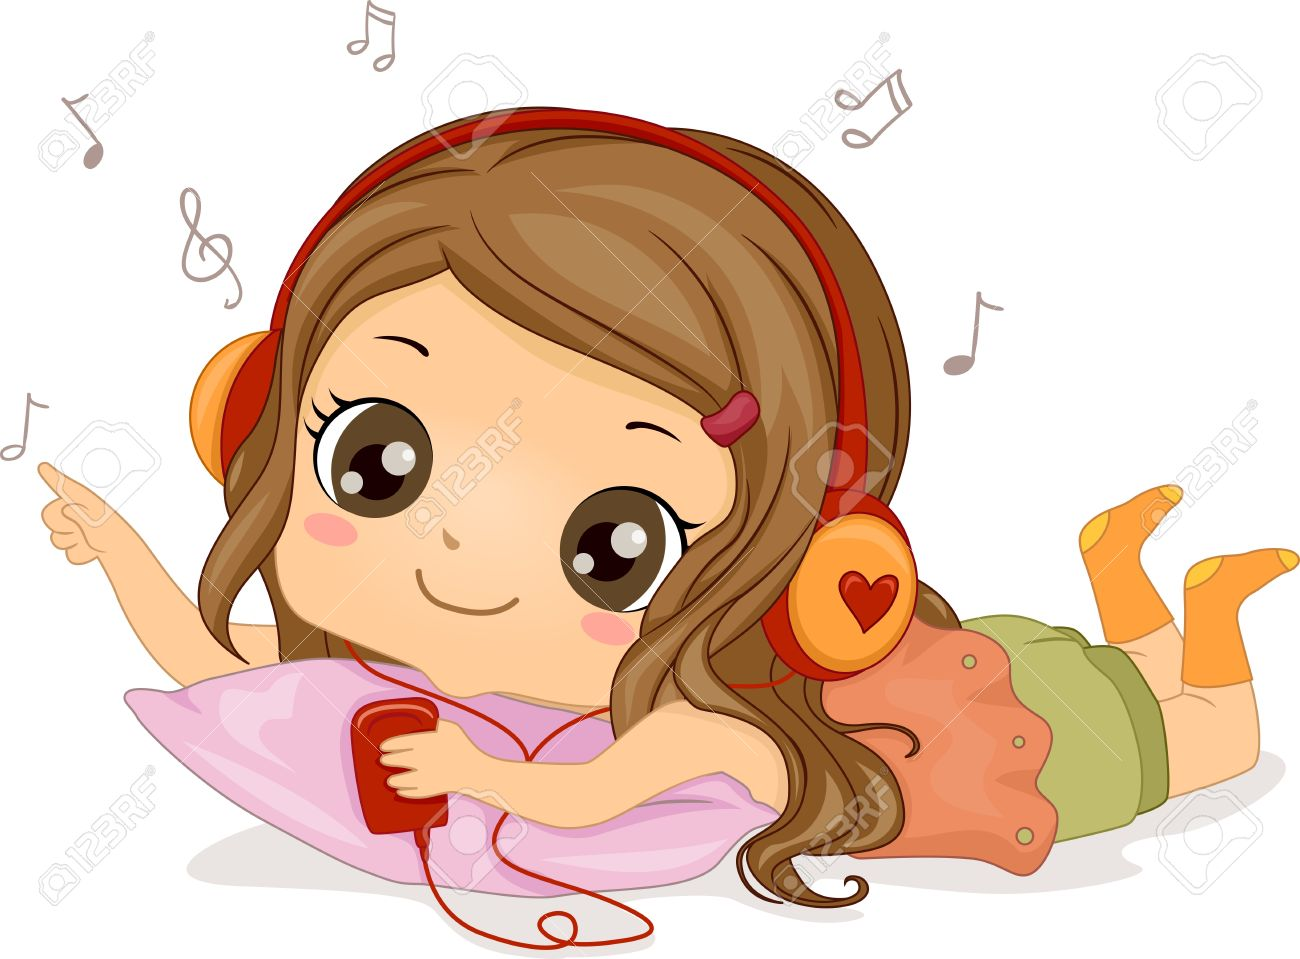 illustration featuring a girl listening to music stock photo